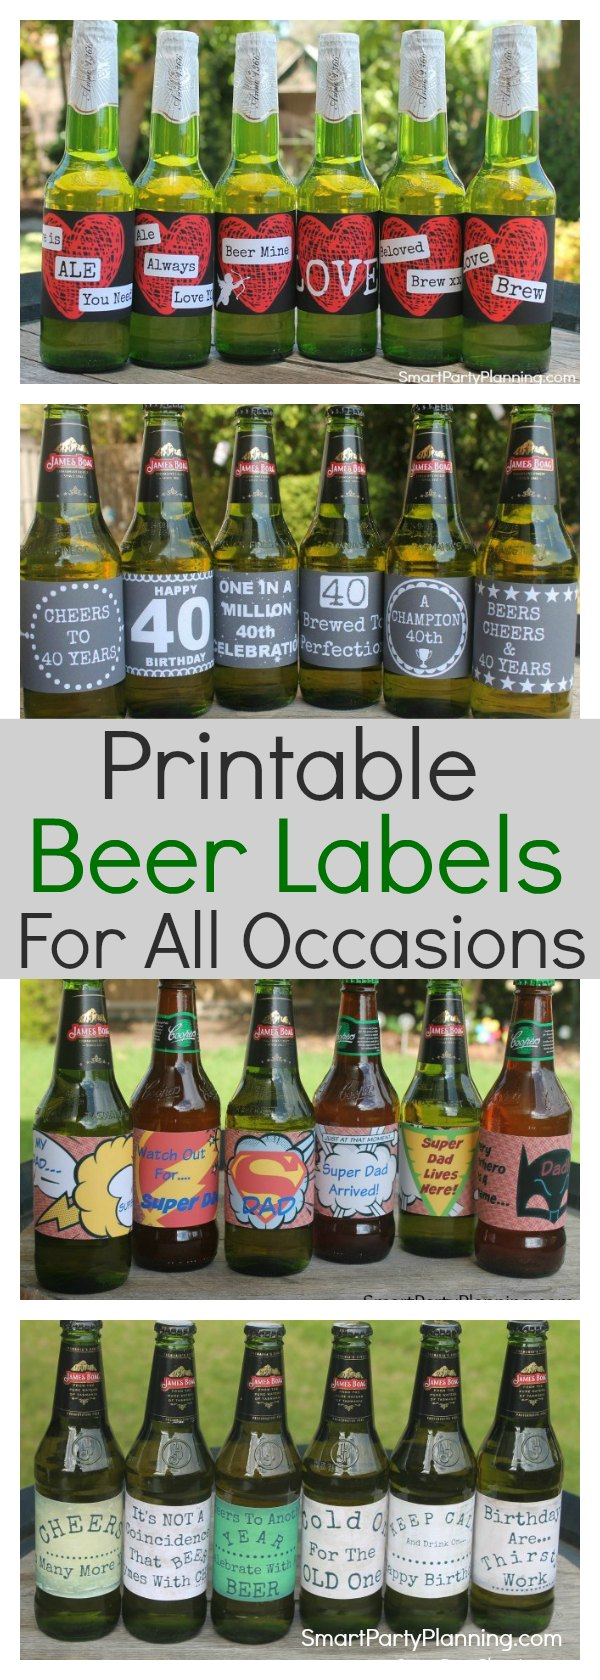 Printable beer labels for all occasions. They are great for gifts and parties.  Perfect for the beer lovers and so simple to do.  Available as an instant download for immediate printing. #Beergift #BeerPrintable #Printable #Instanddownload